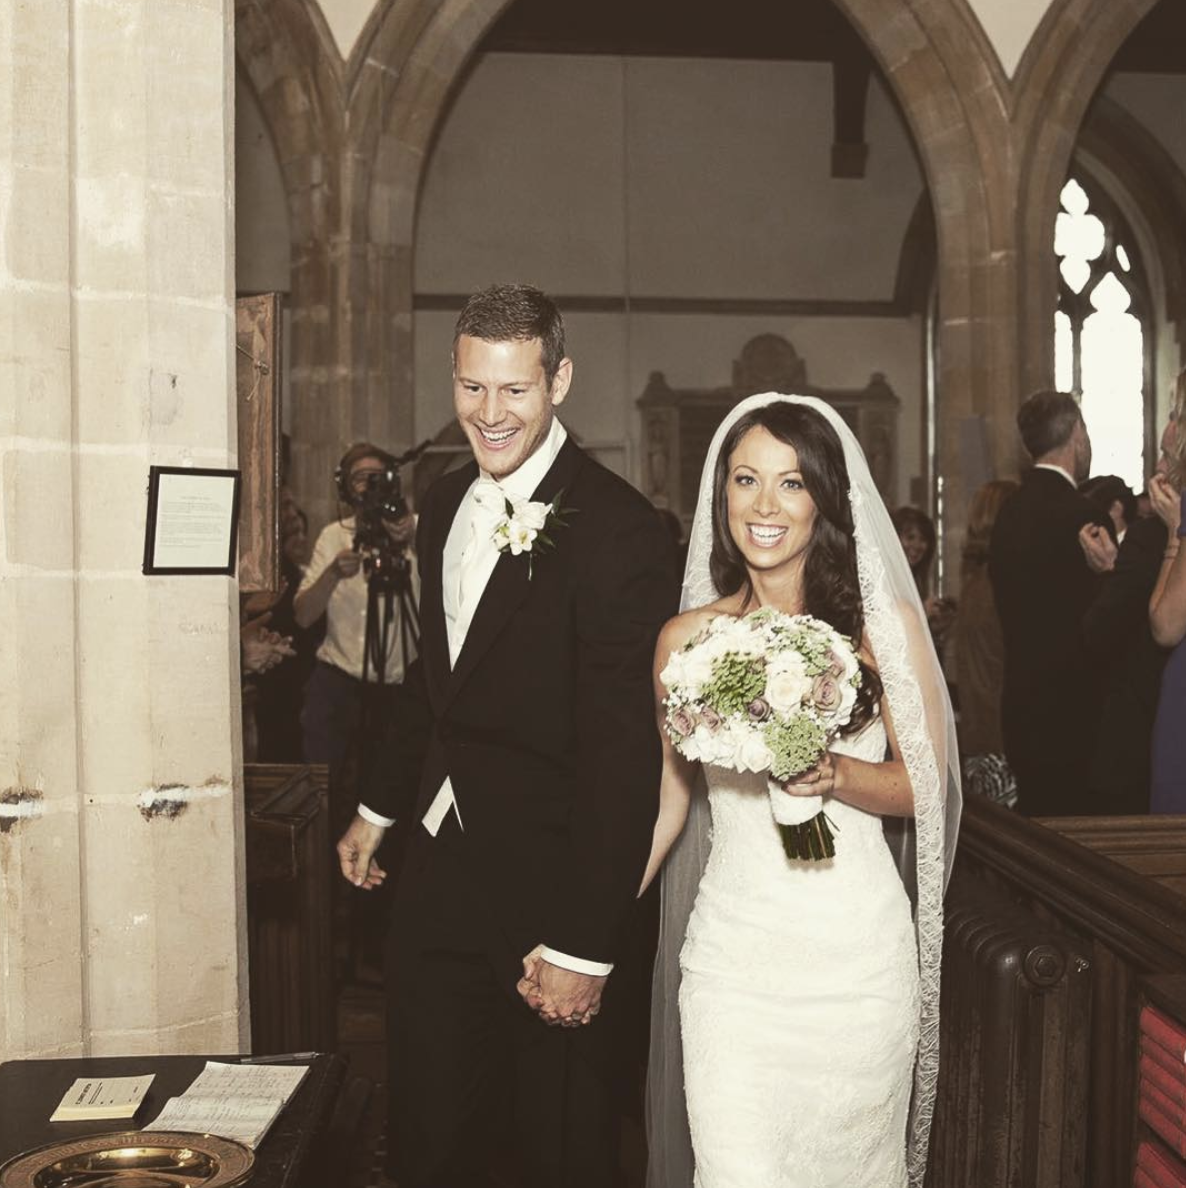 Tom Hopper (Dickon Tarly) and Laura Hopper The pair exchanged vows in 2014 and now have two adorable little ones.